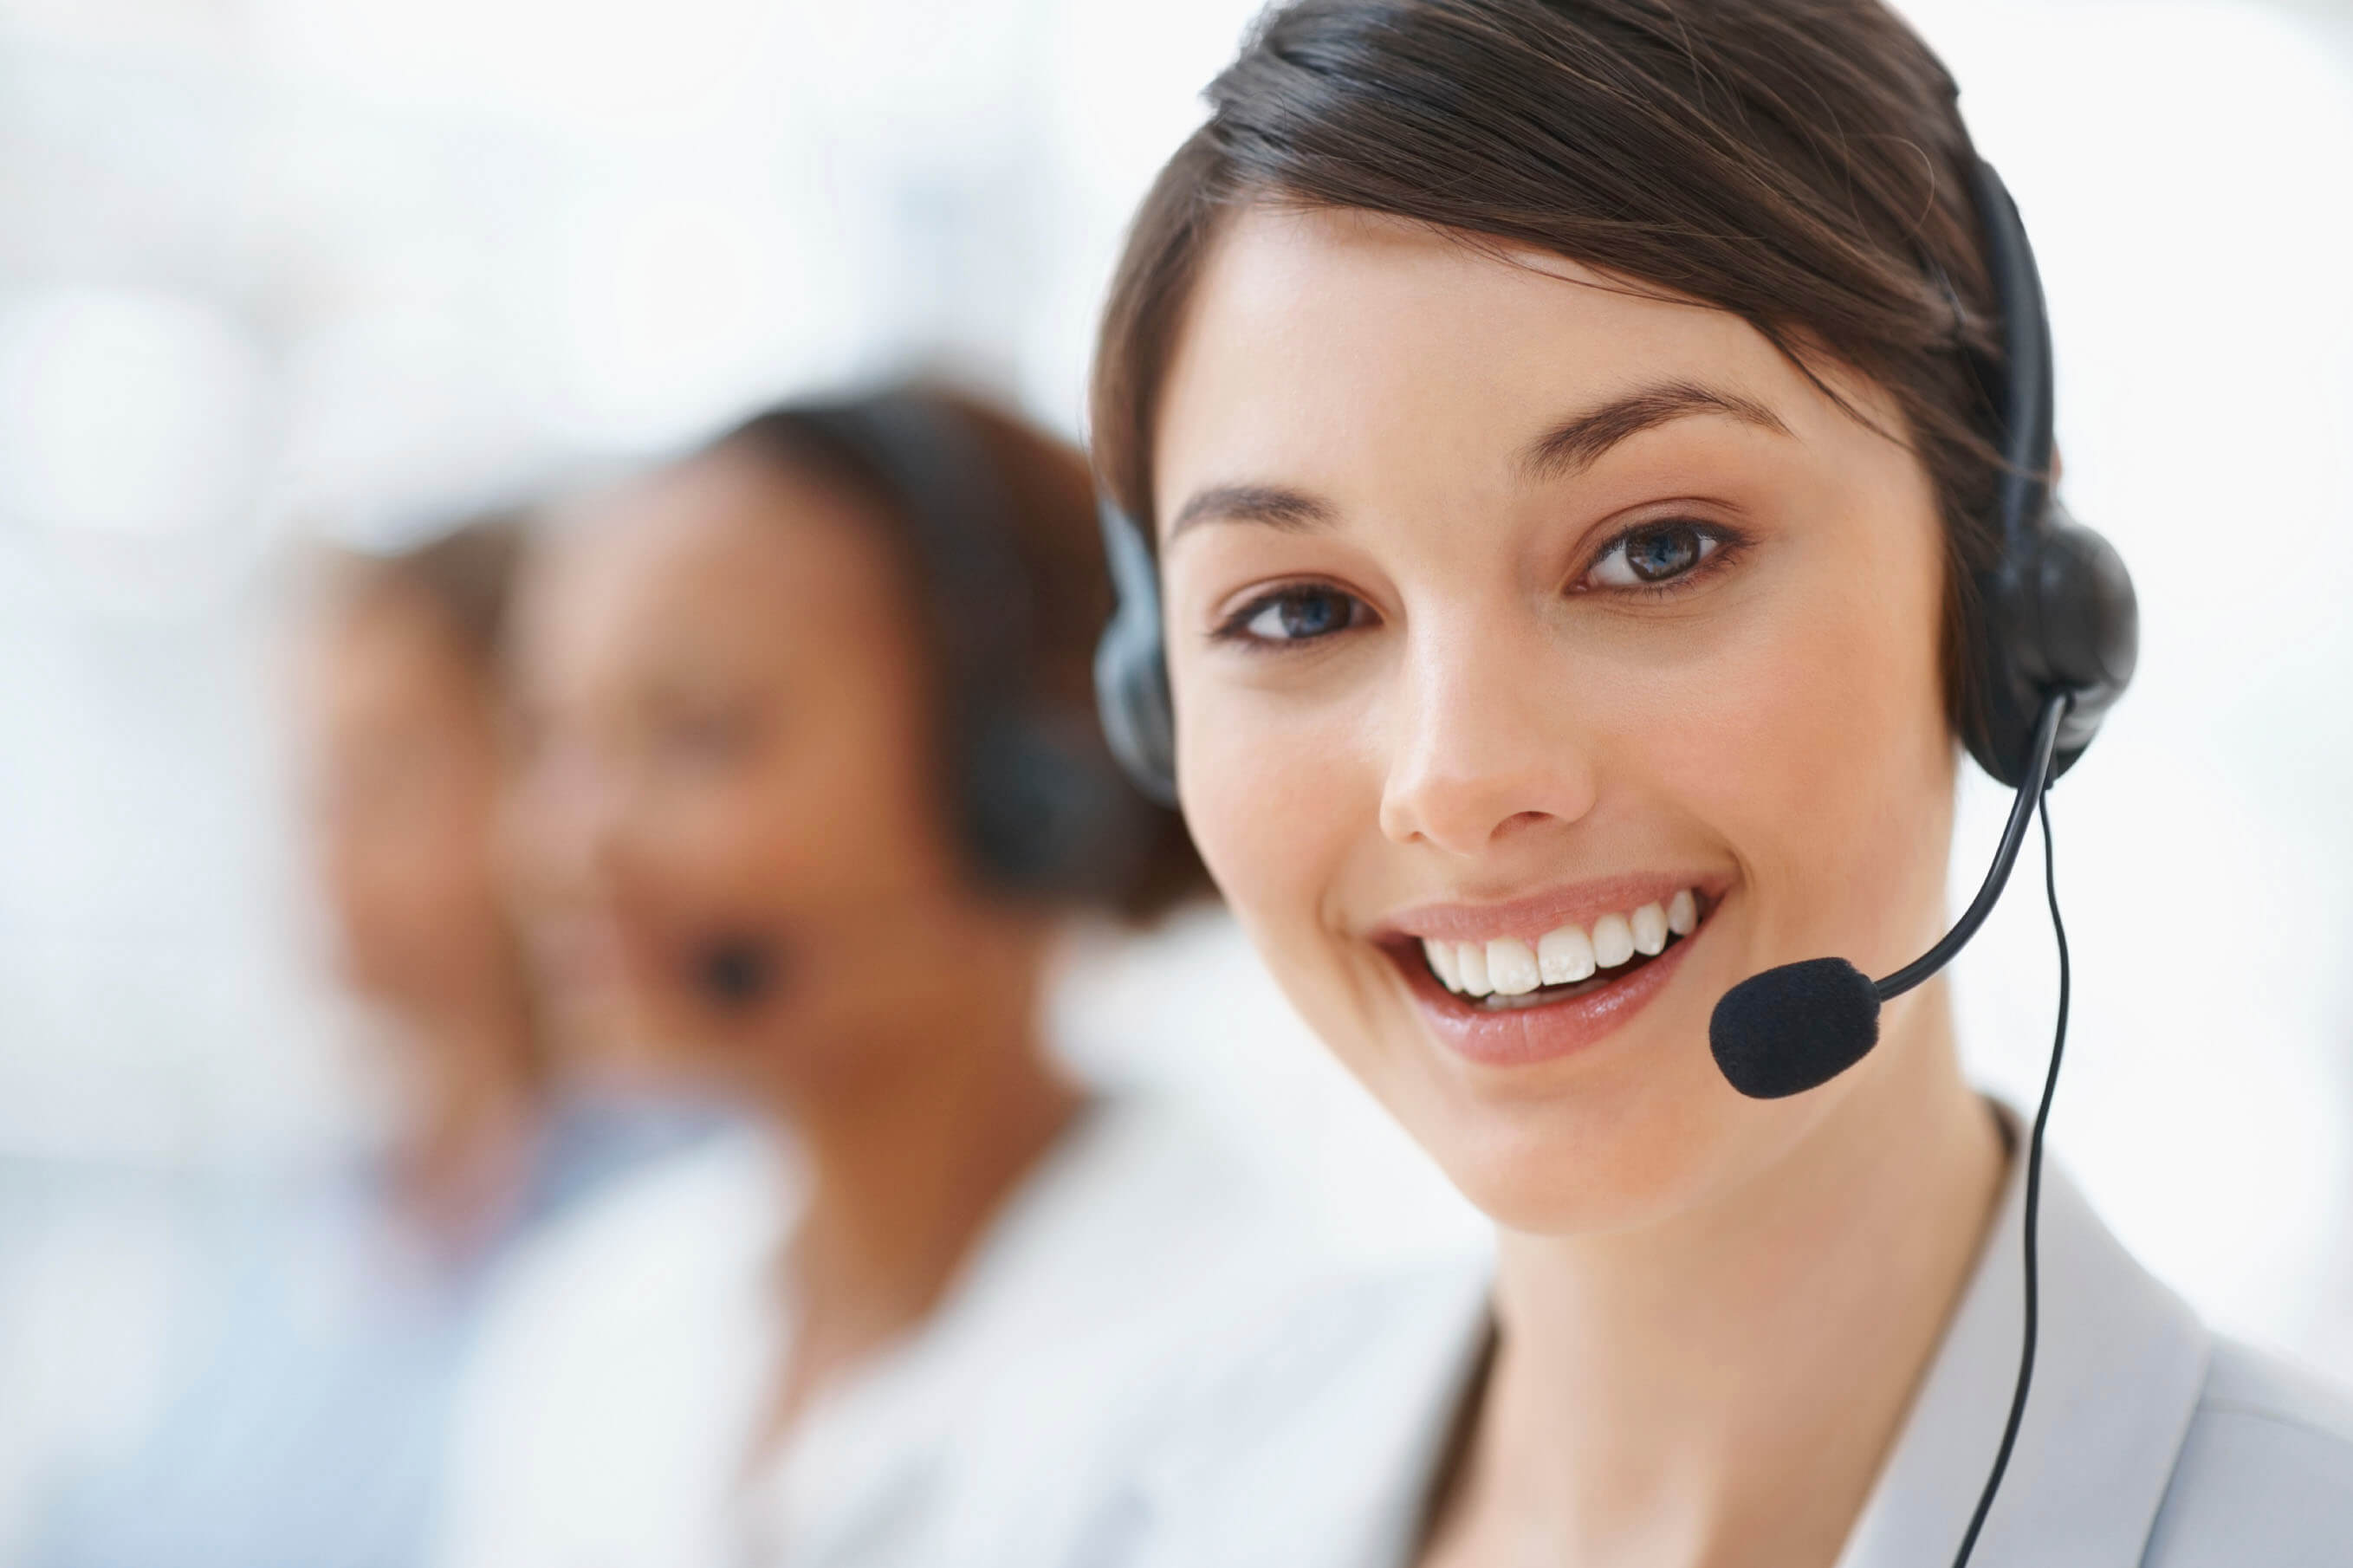 a woman speaking on a headset phone